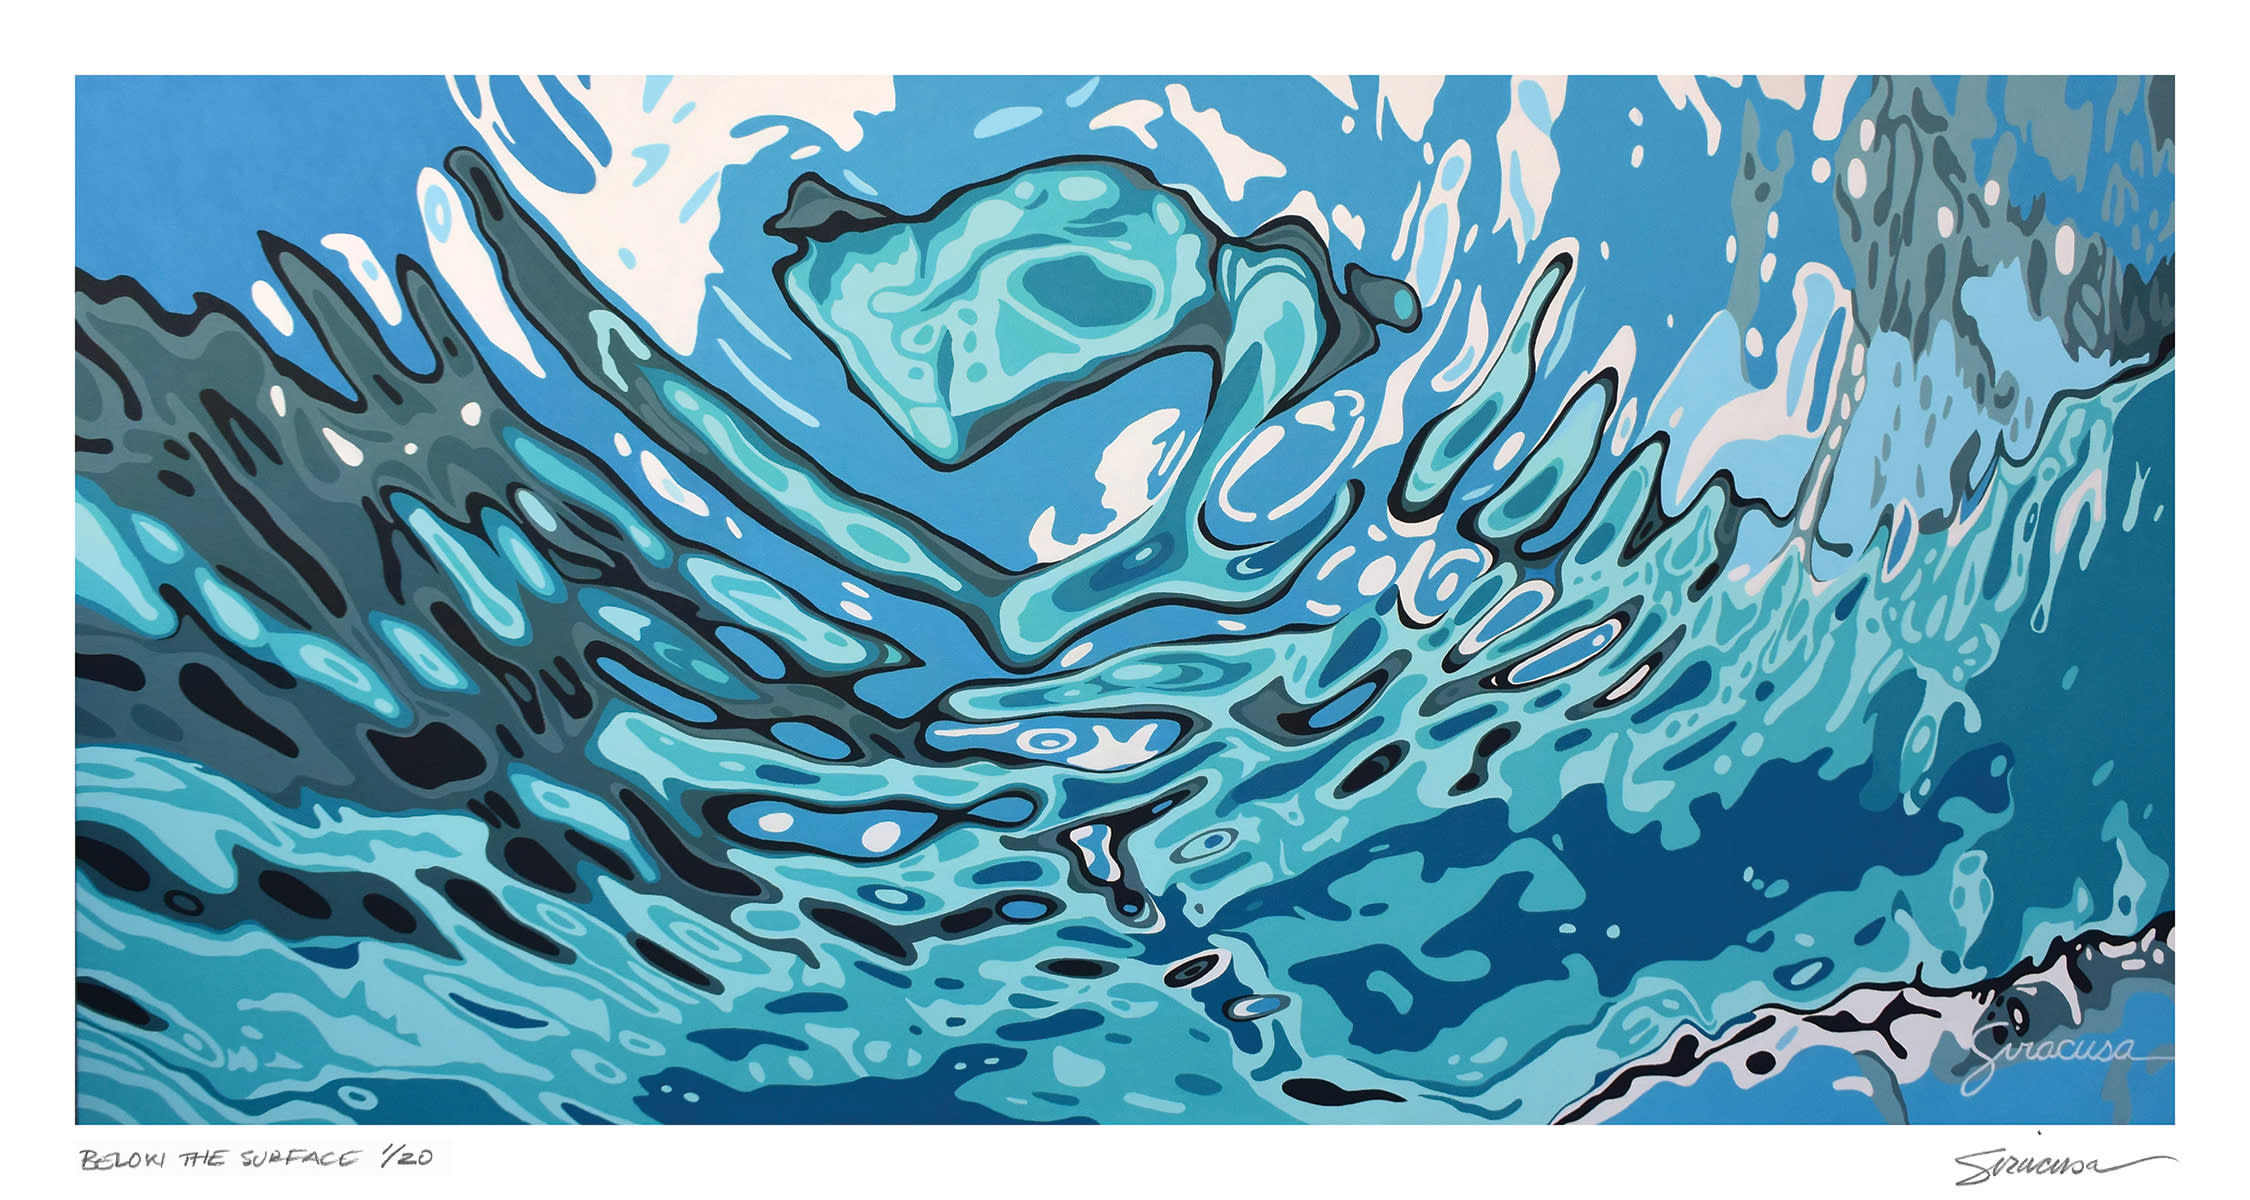 Below the surface   limited edition print nabxam